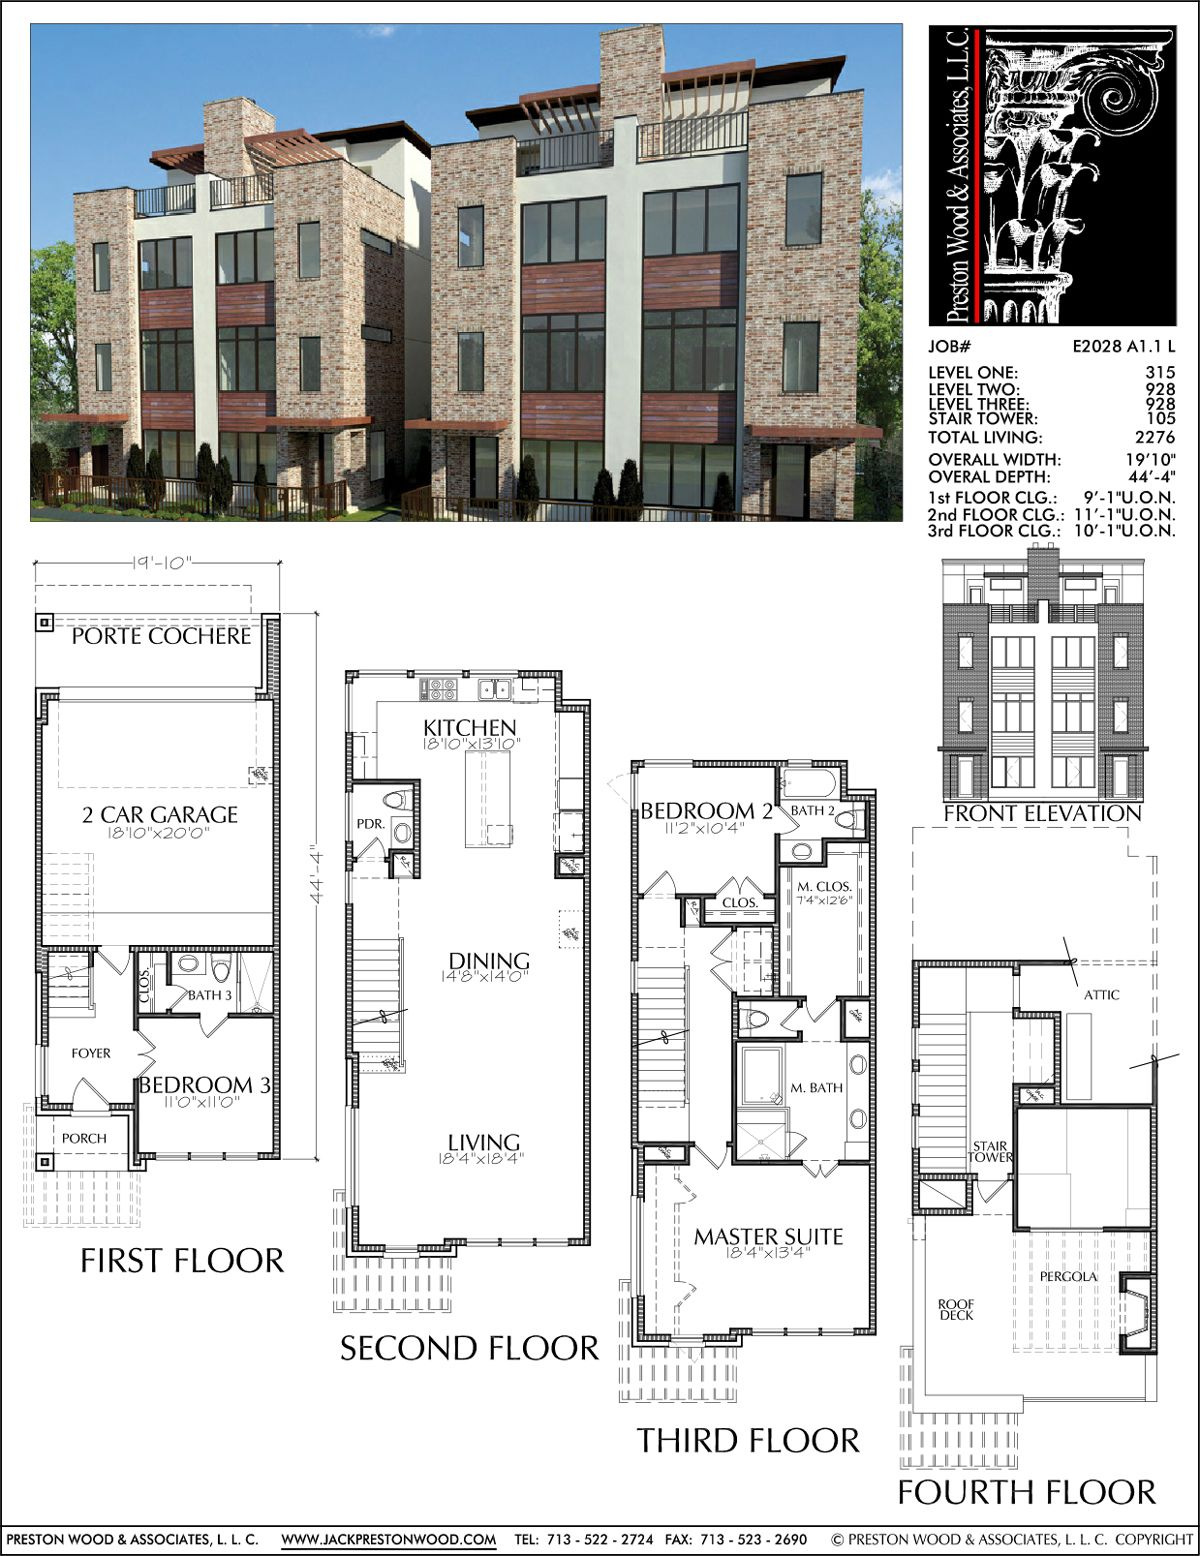 Duplex Townhome Plan E2028 A1 1 Small Modern House